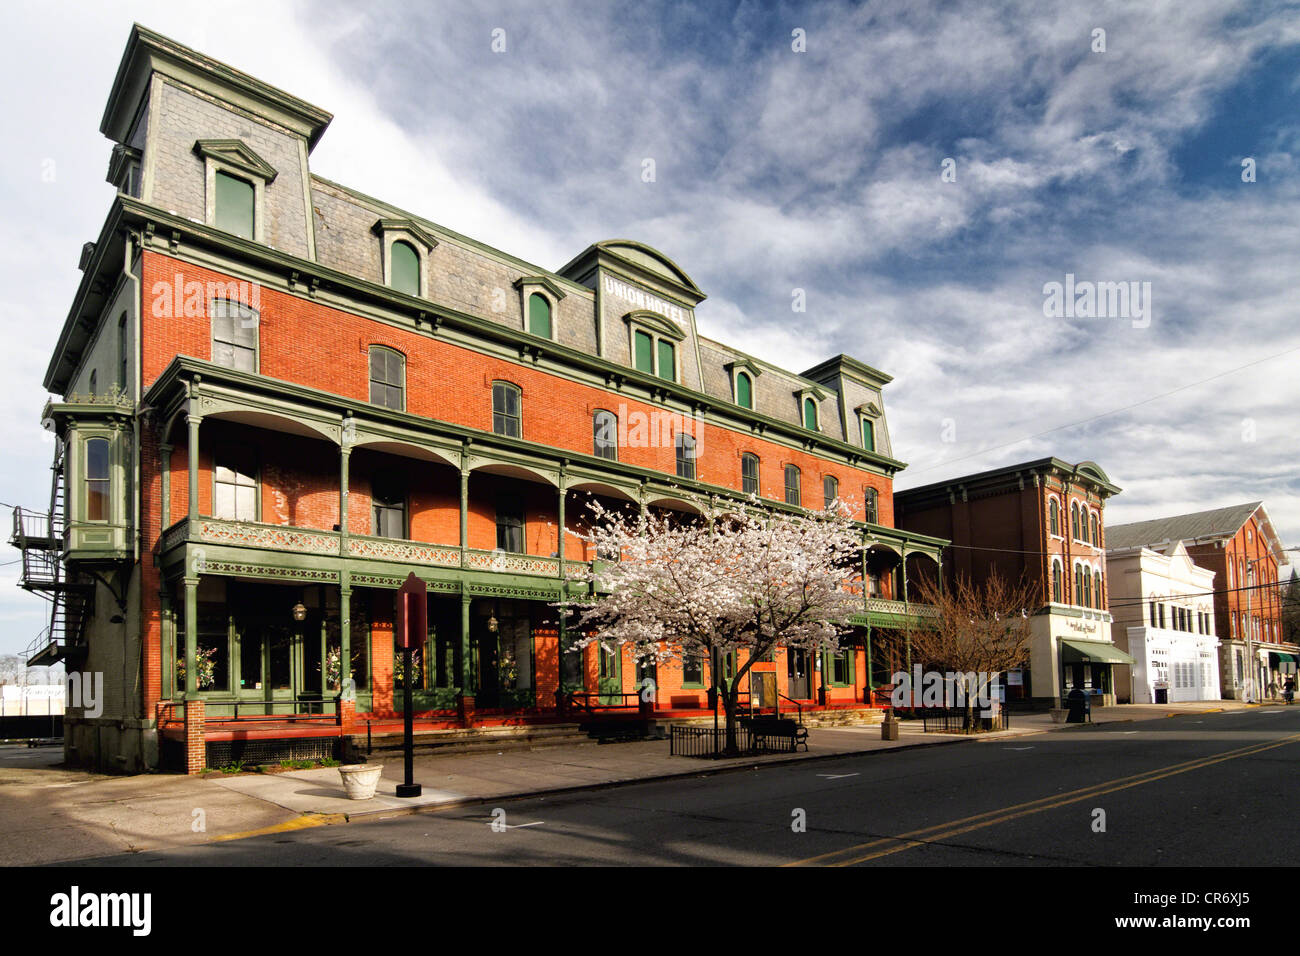 View of the Historic Union Hotel in Flemington, Hunterdon County, New Jersey - Stock Image